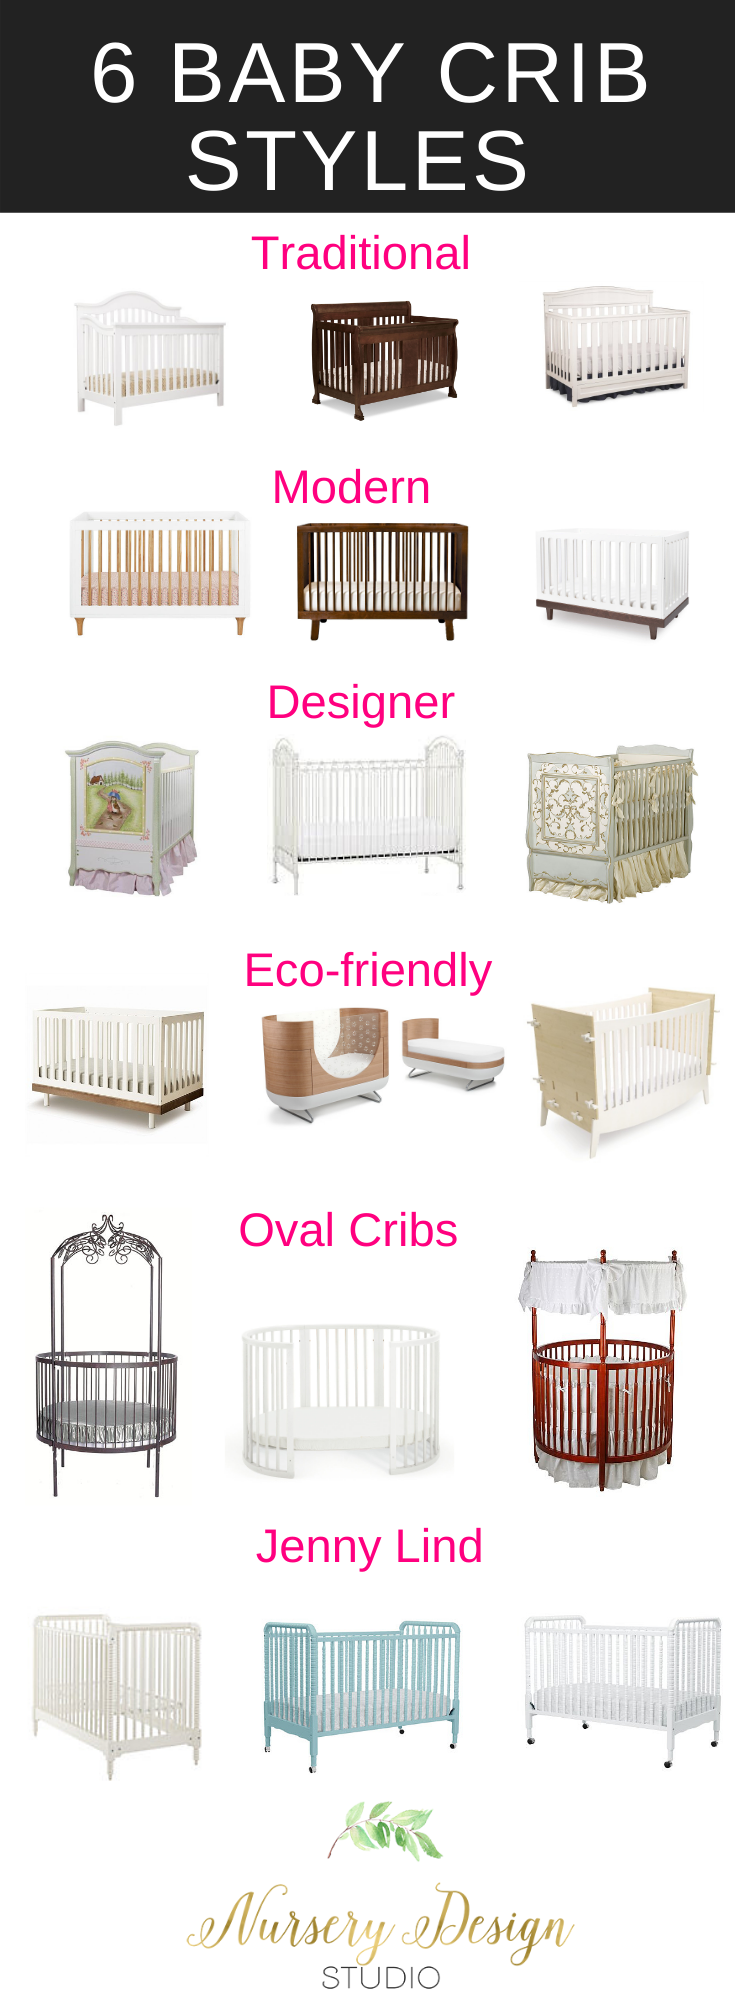 How To Save On Nursery Furniture Nursery Design Studio